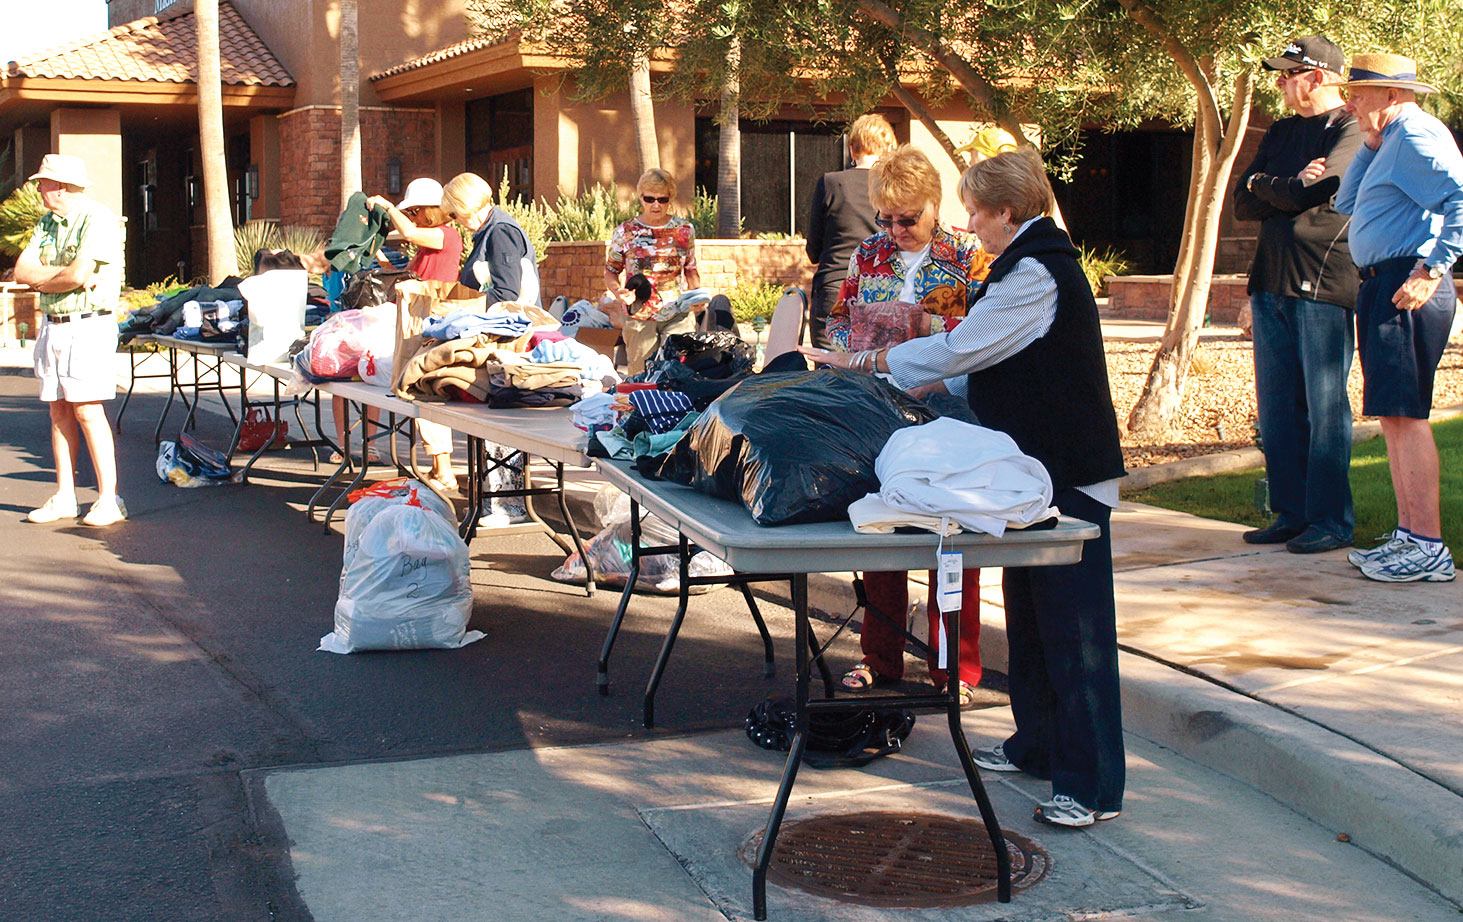 The Women of Quail Creek sort donations to benefit the homeless.